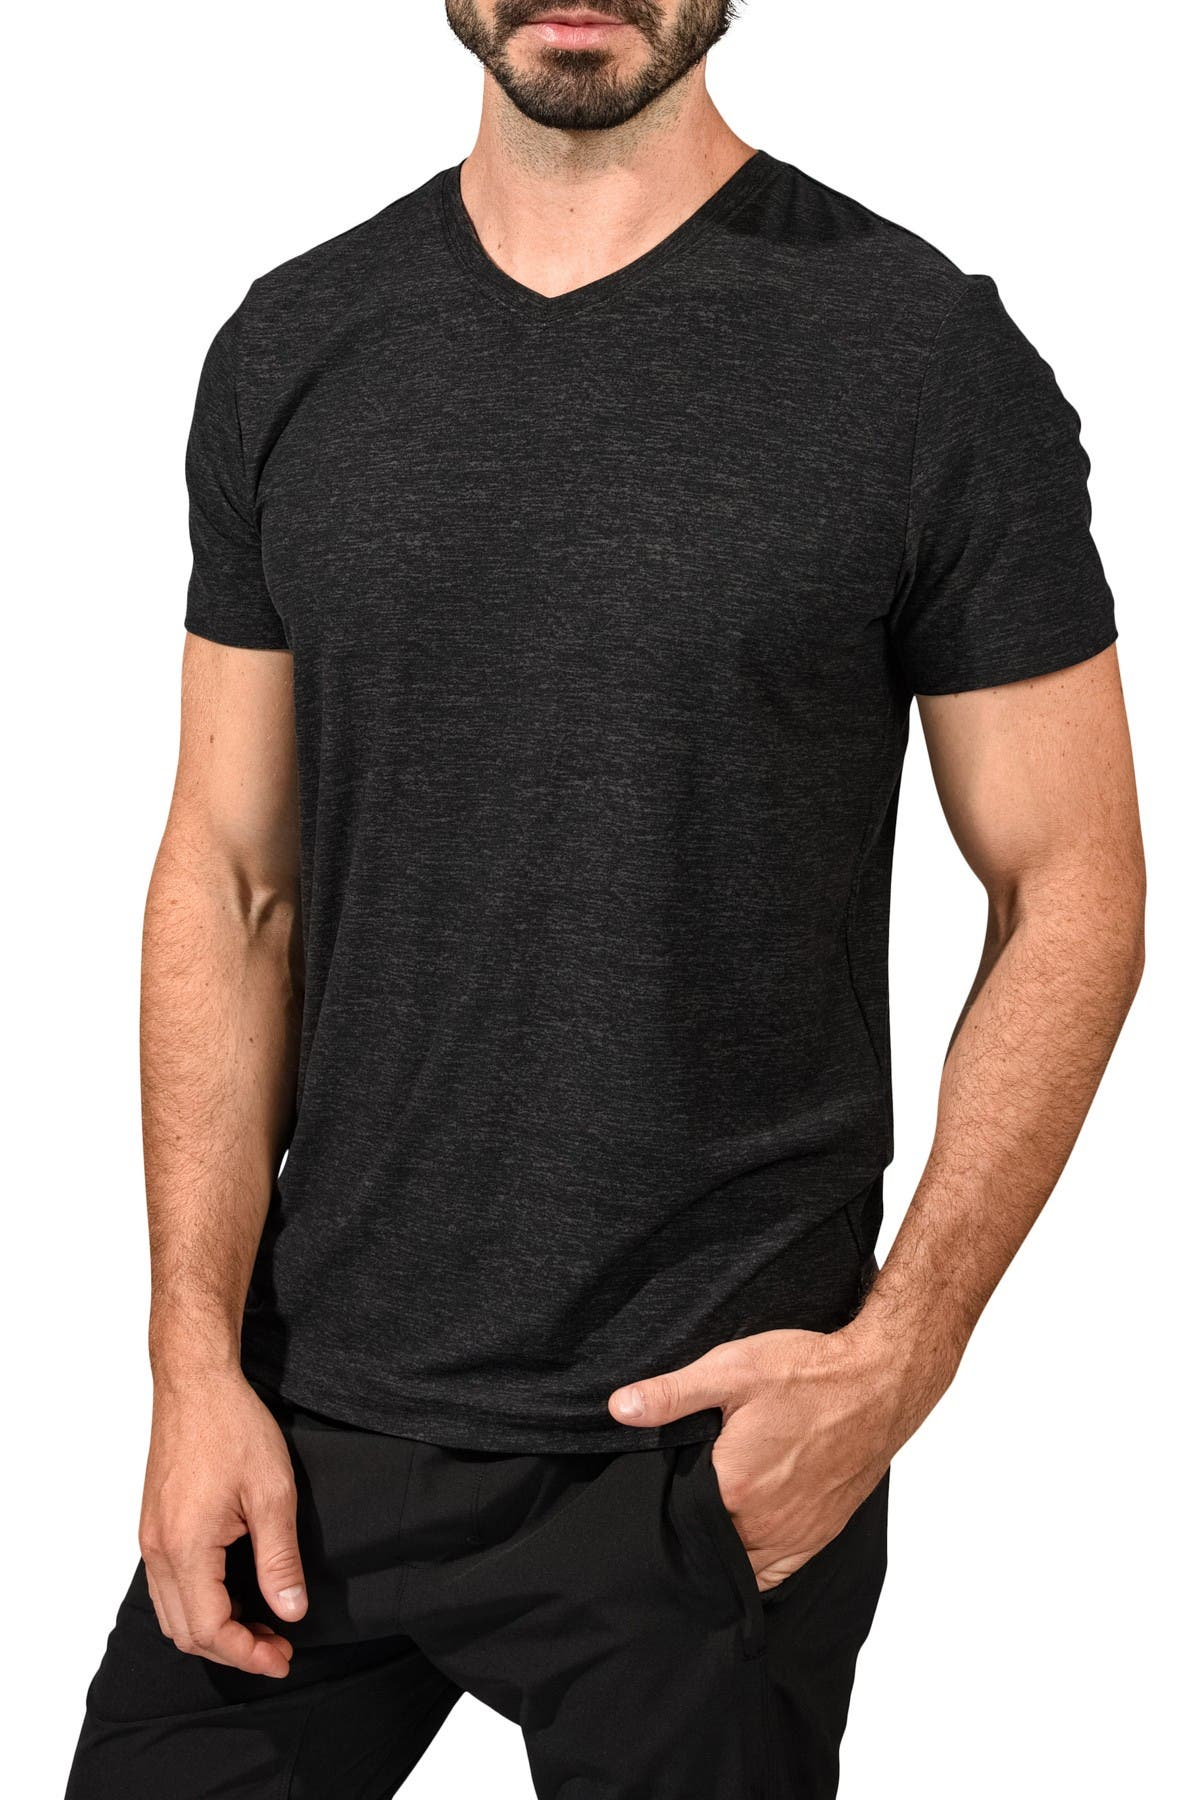 Image of 90 Degree By Reflex V-Neck T-Shirt - Pack of 2